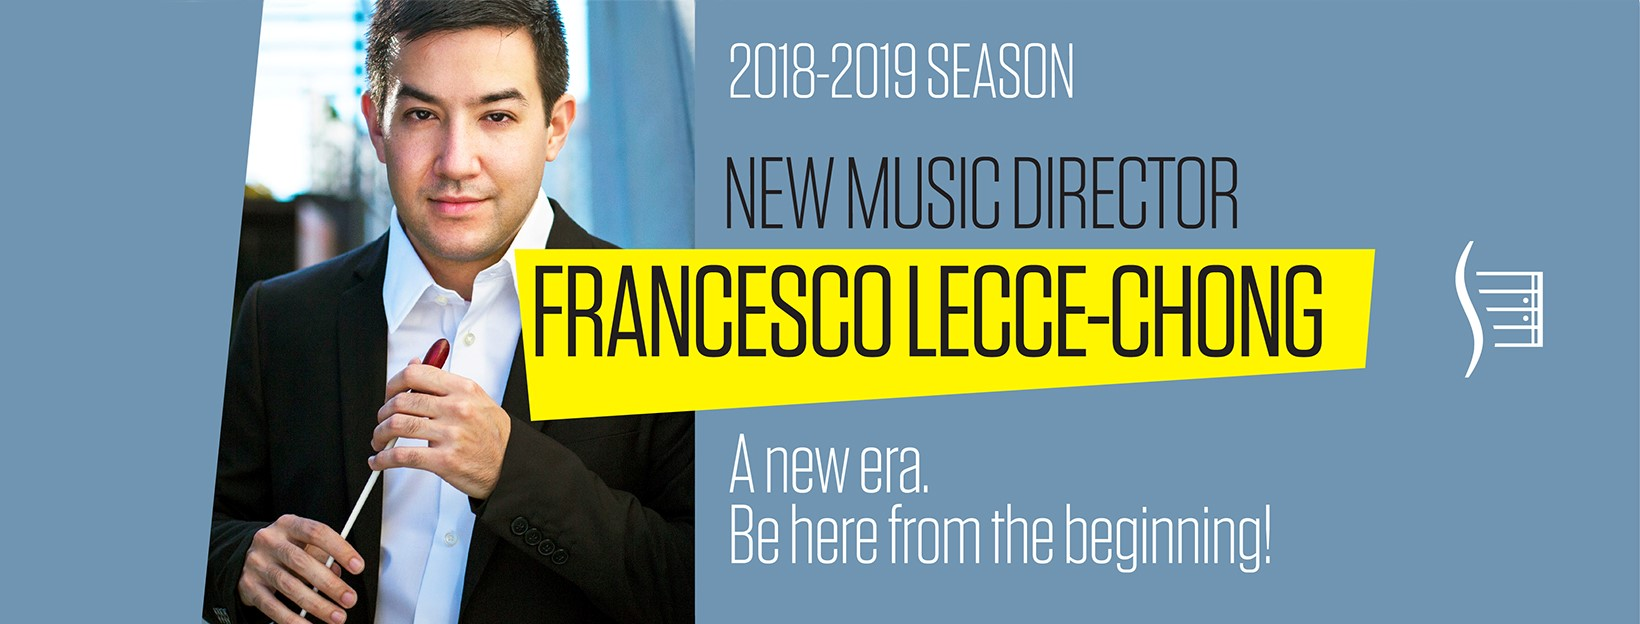 Tiers of Heaven: a pre-concert conversation with new Santa Rosa Symphony Music Director & Conductor Francesco Lecce-Chong